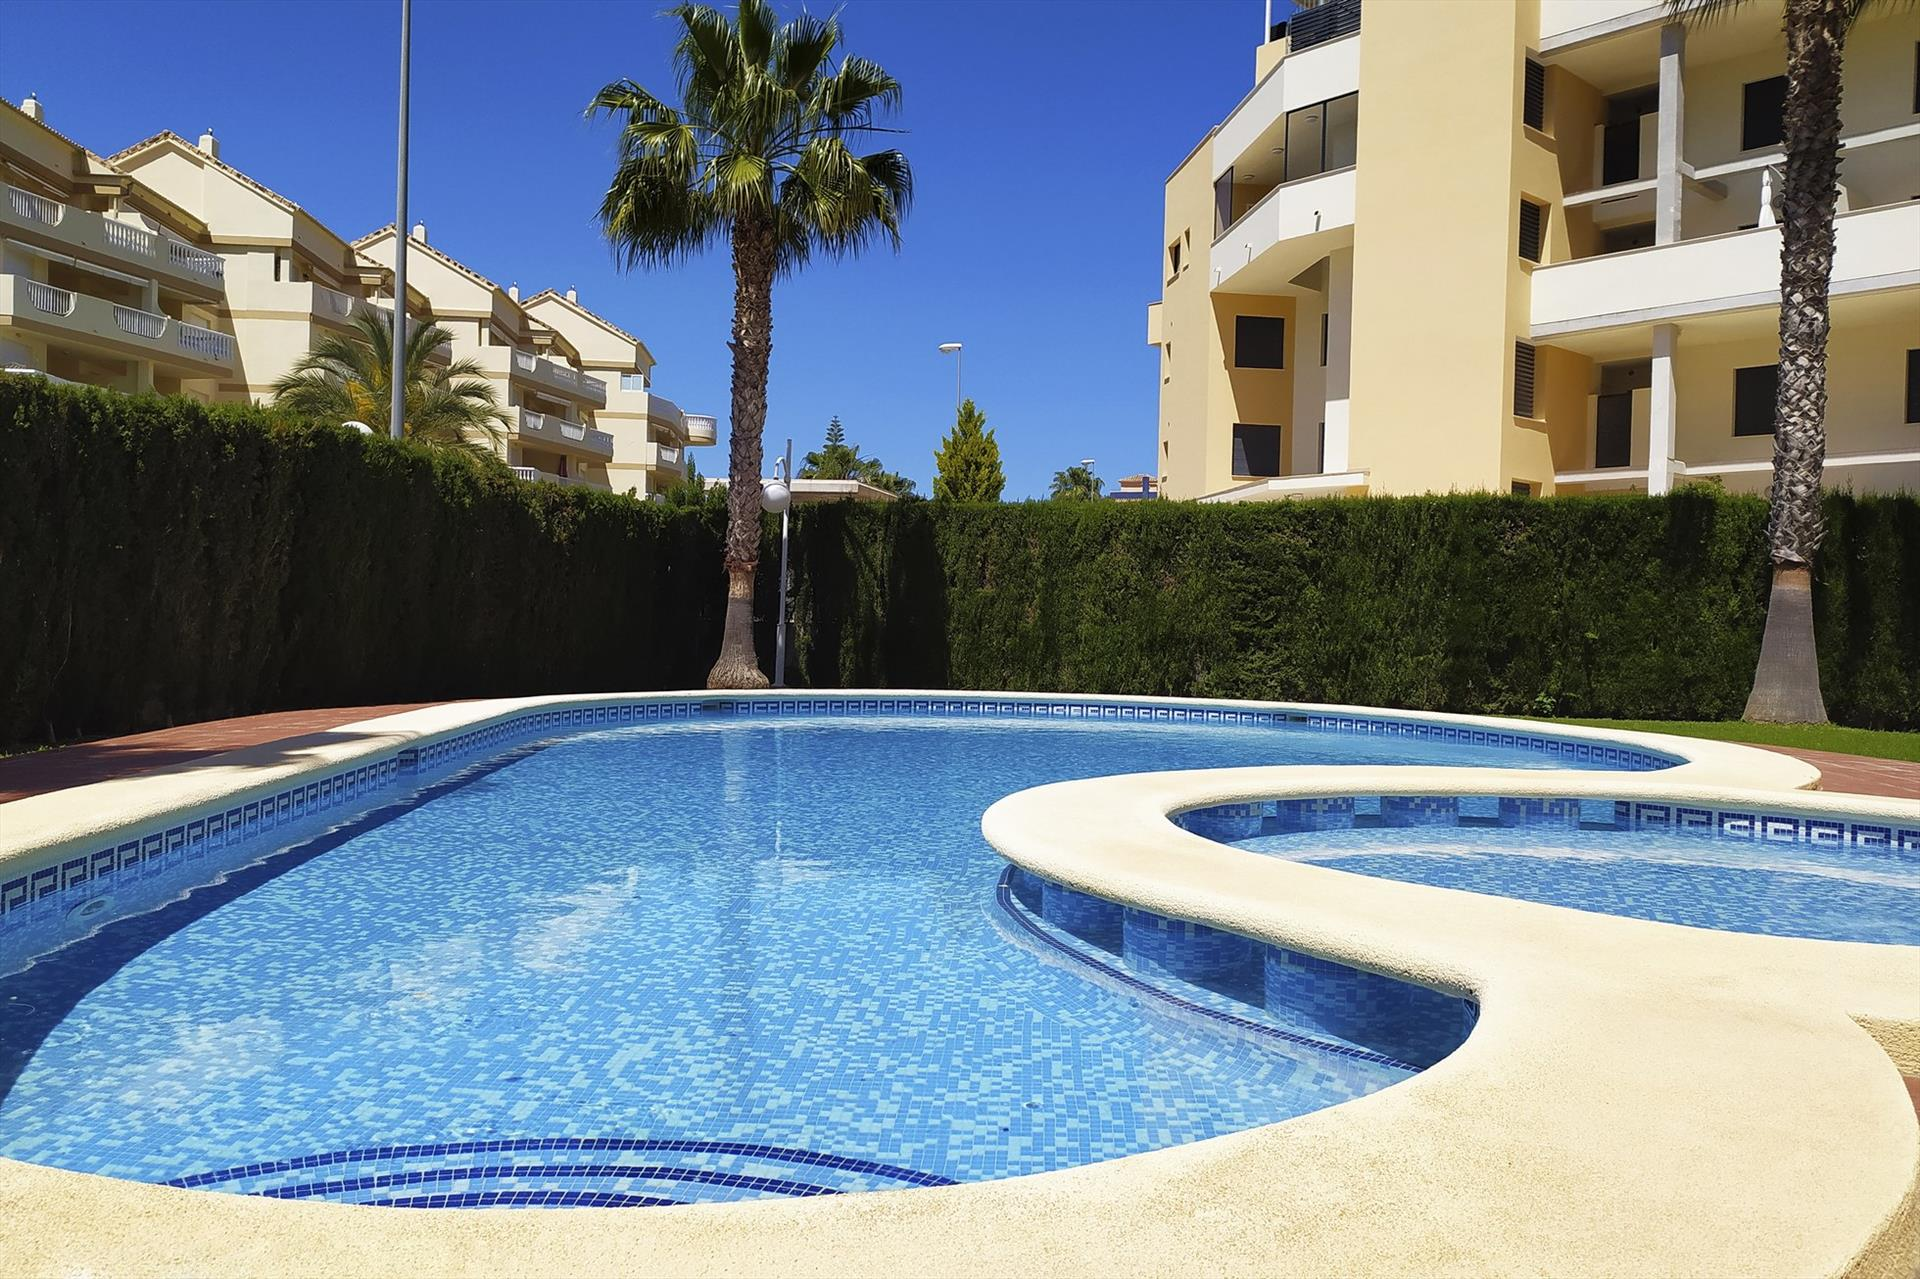 AP1104  Apartamento Urbanizacion Daly, Classic and comfortable apartment  with communal pool in Denia, on the Costa Blanca, Spain for 3 persons.....